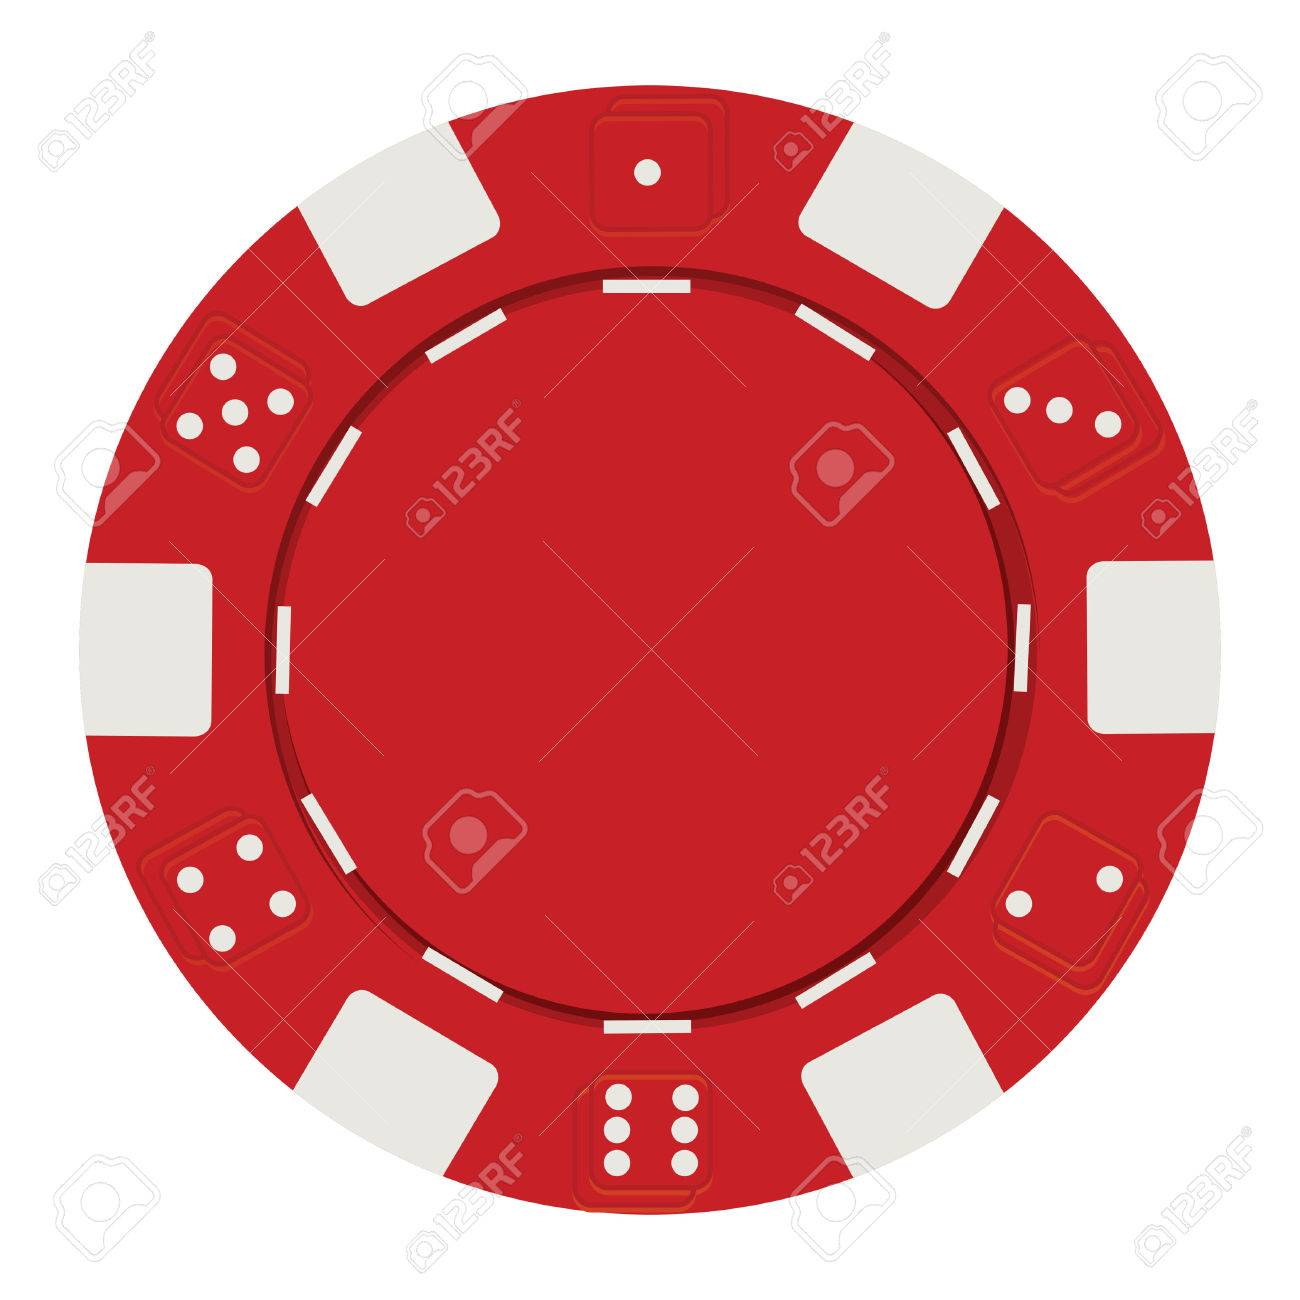 single green casino chip isolated on white royalty free cliparts rh 123rf com poker chip vector png poker chip vector design